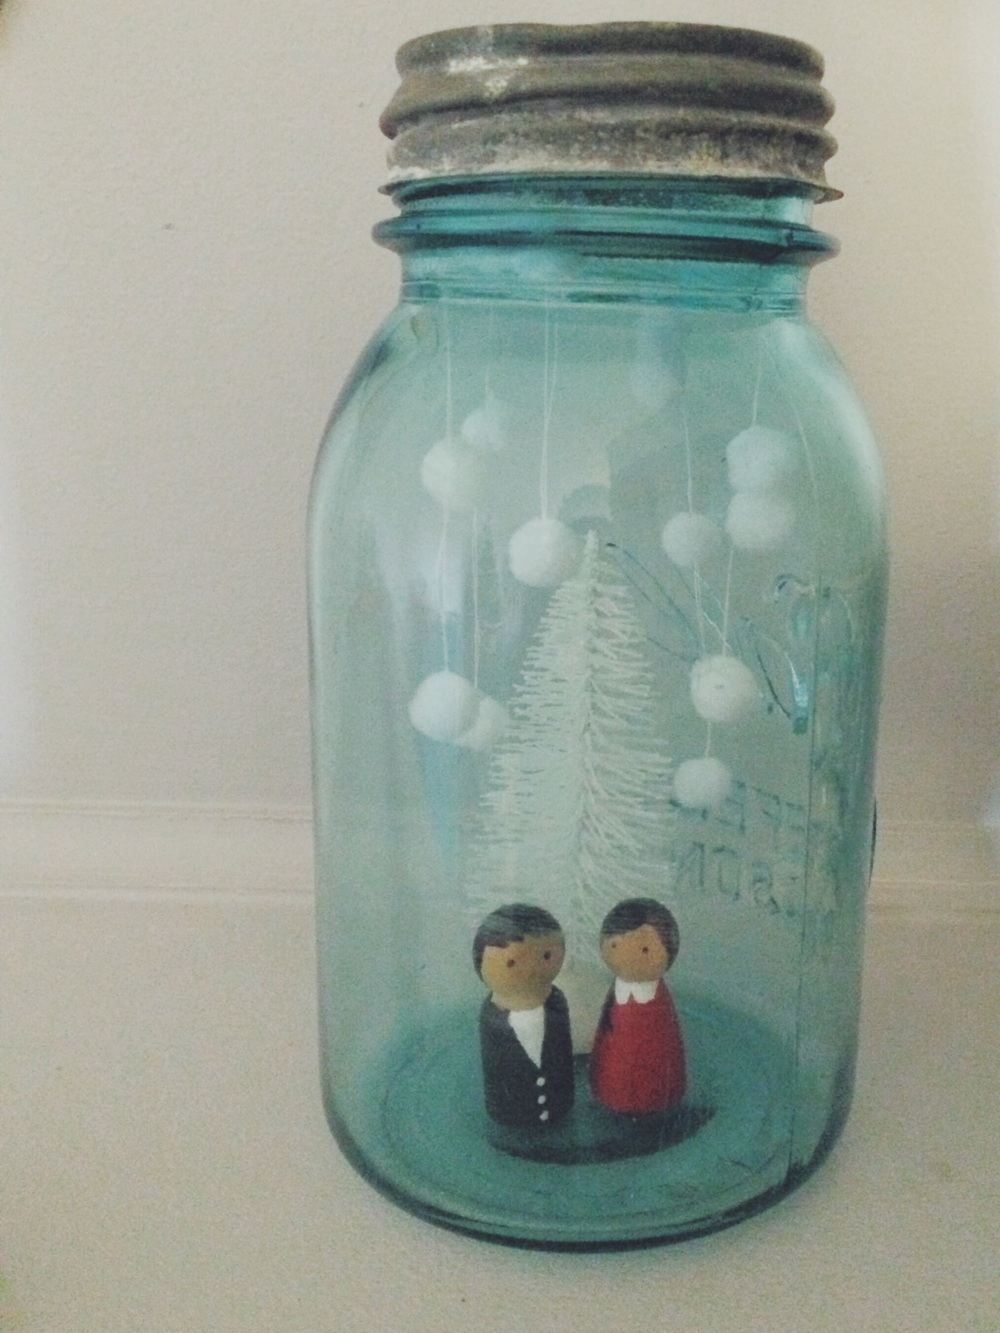 Diy Snow Globes. Click through for instructions.